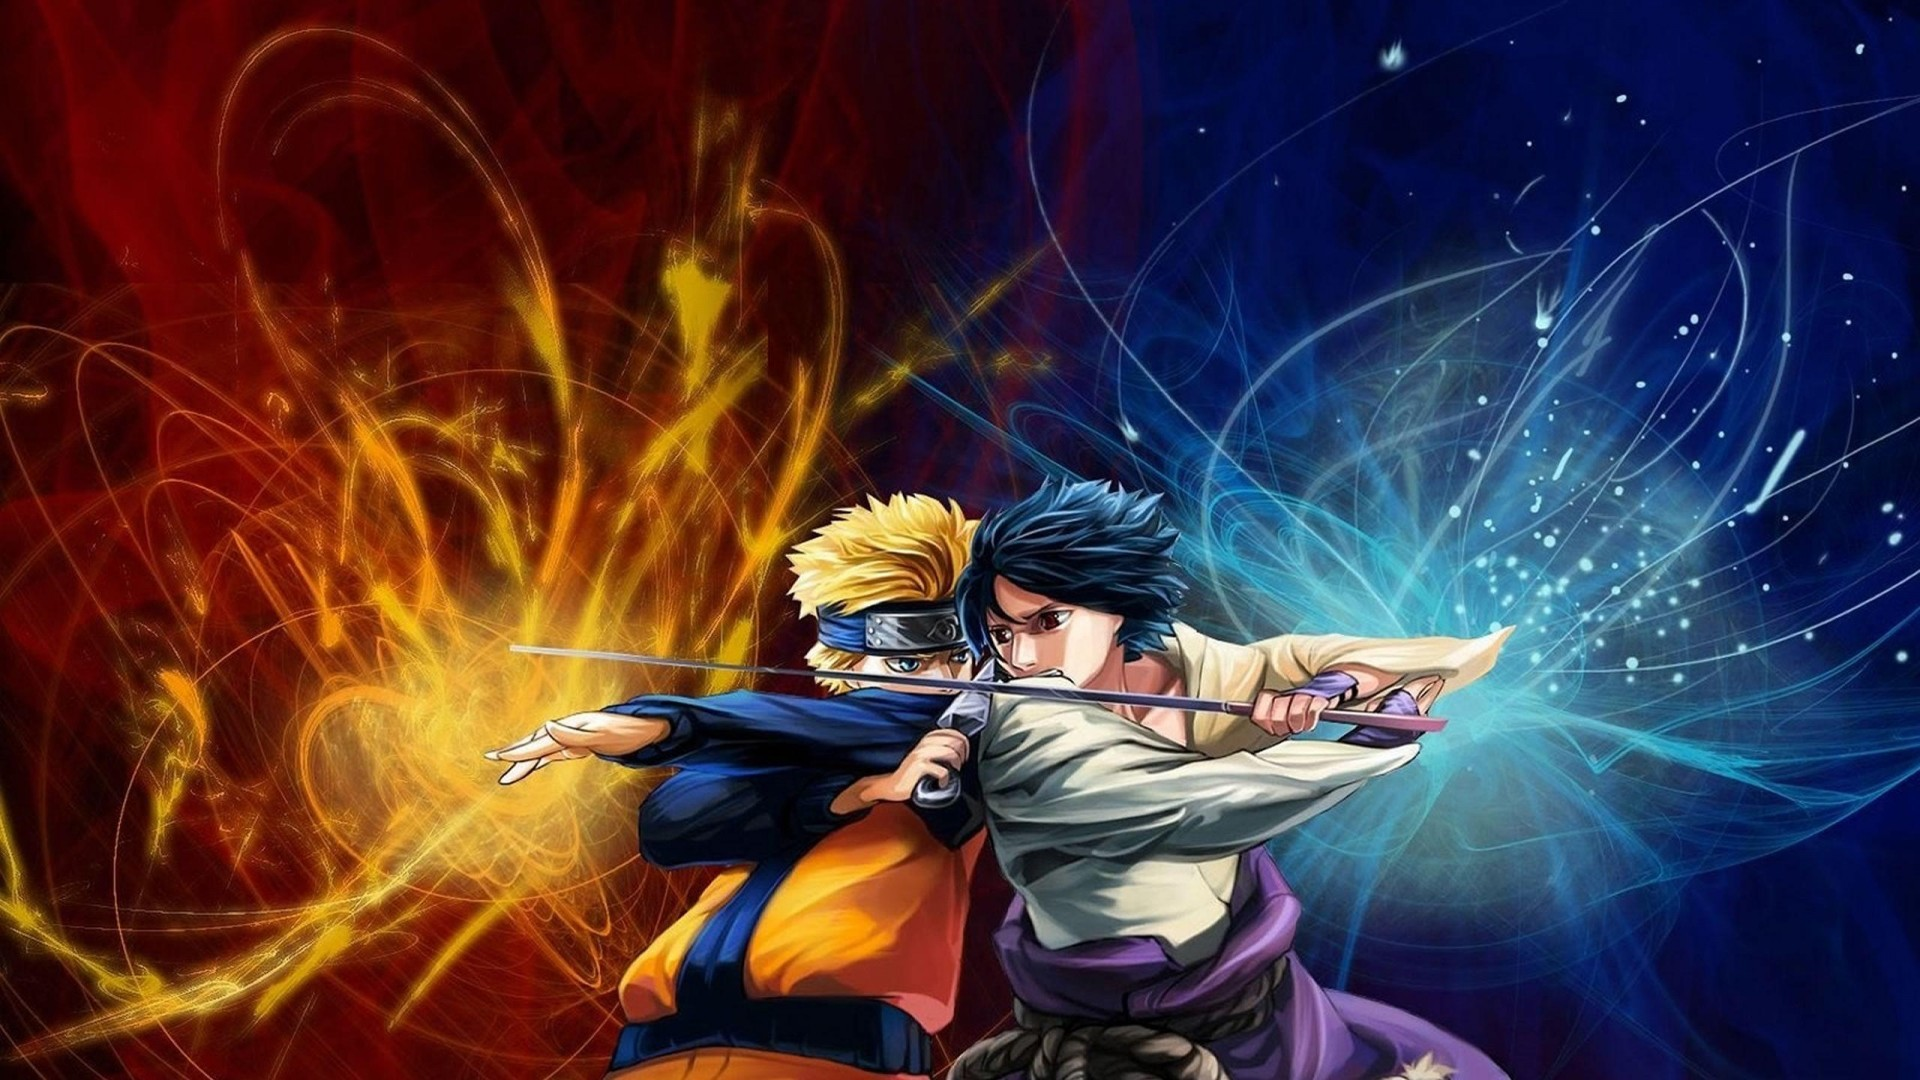 1920x1080 Naruto Full HD Wallpapers Group